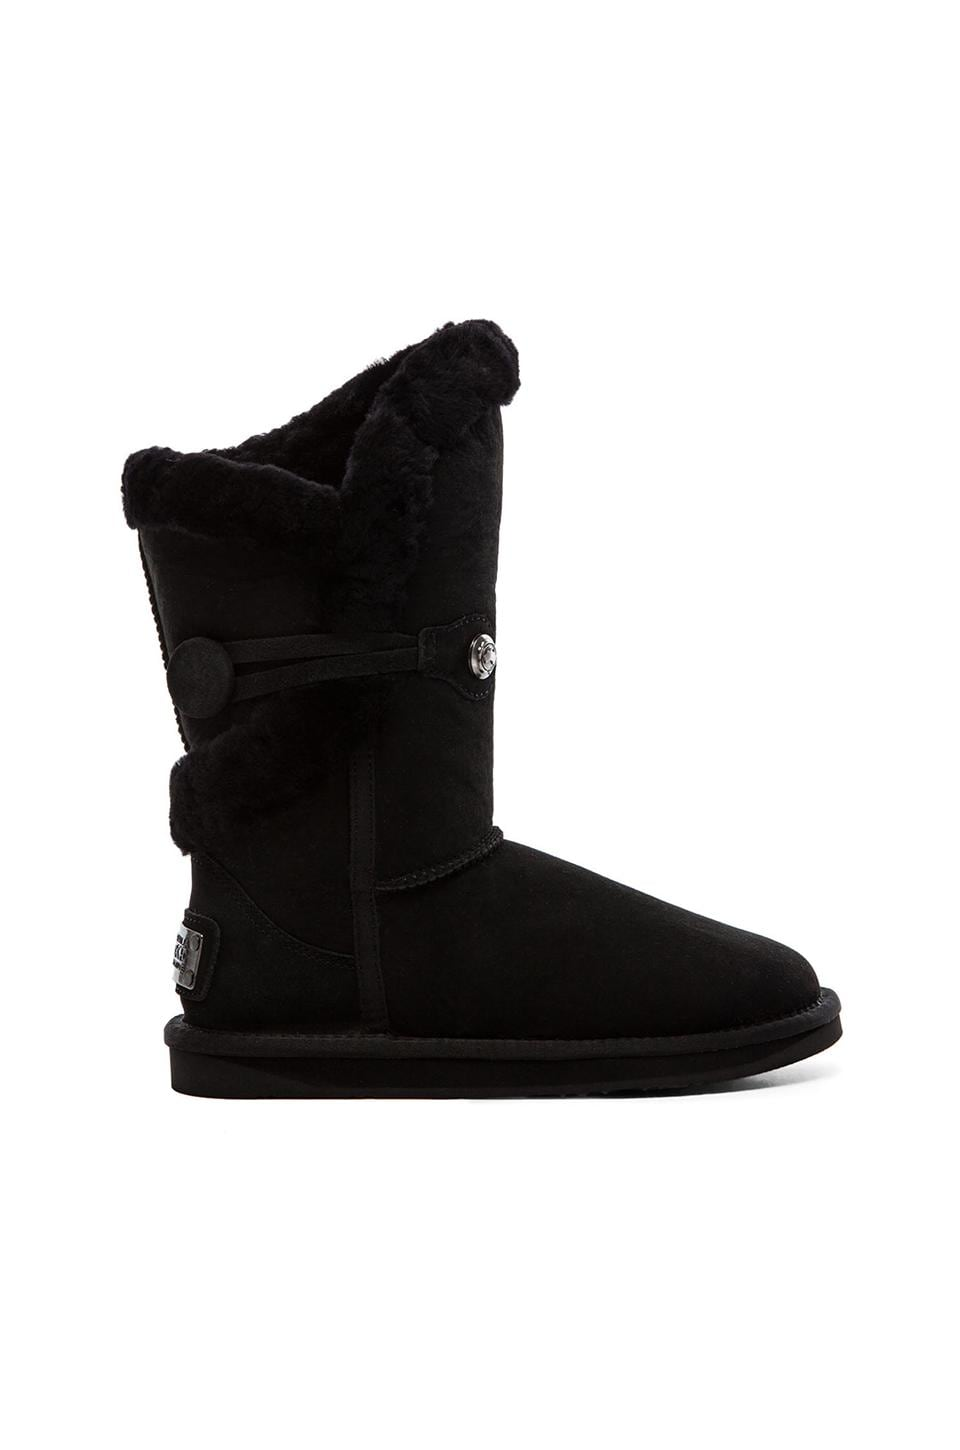 Australia Luxe Collective Nordic Shearling Short Boot with Fur in Black